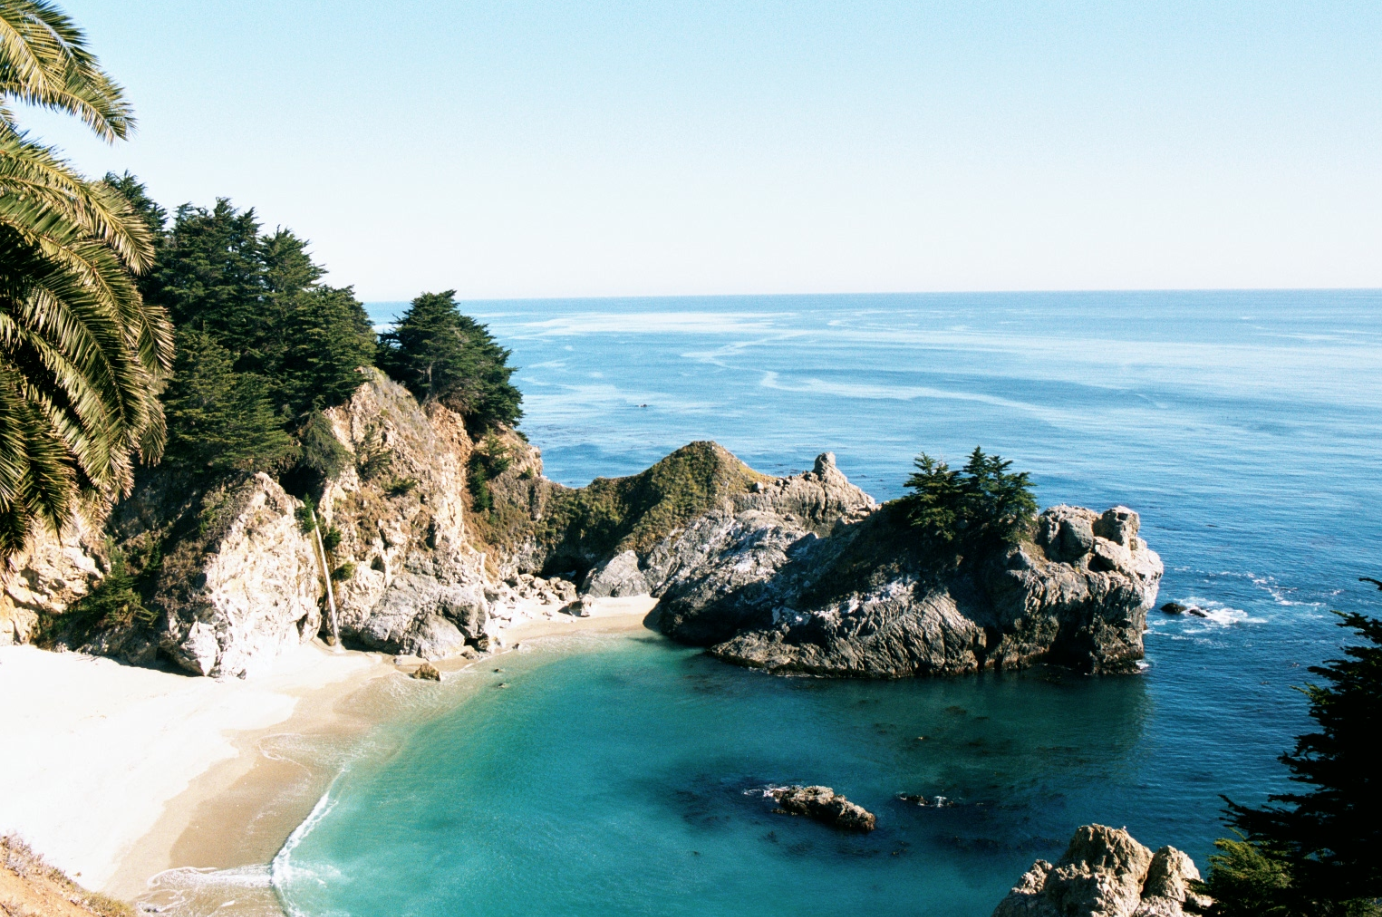 Big Sur is loosely defined as the Central California Coastal area between Carmel and San Simeon.